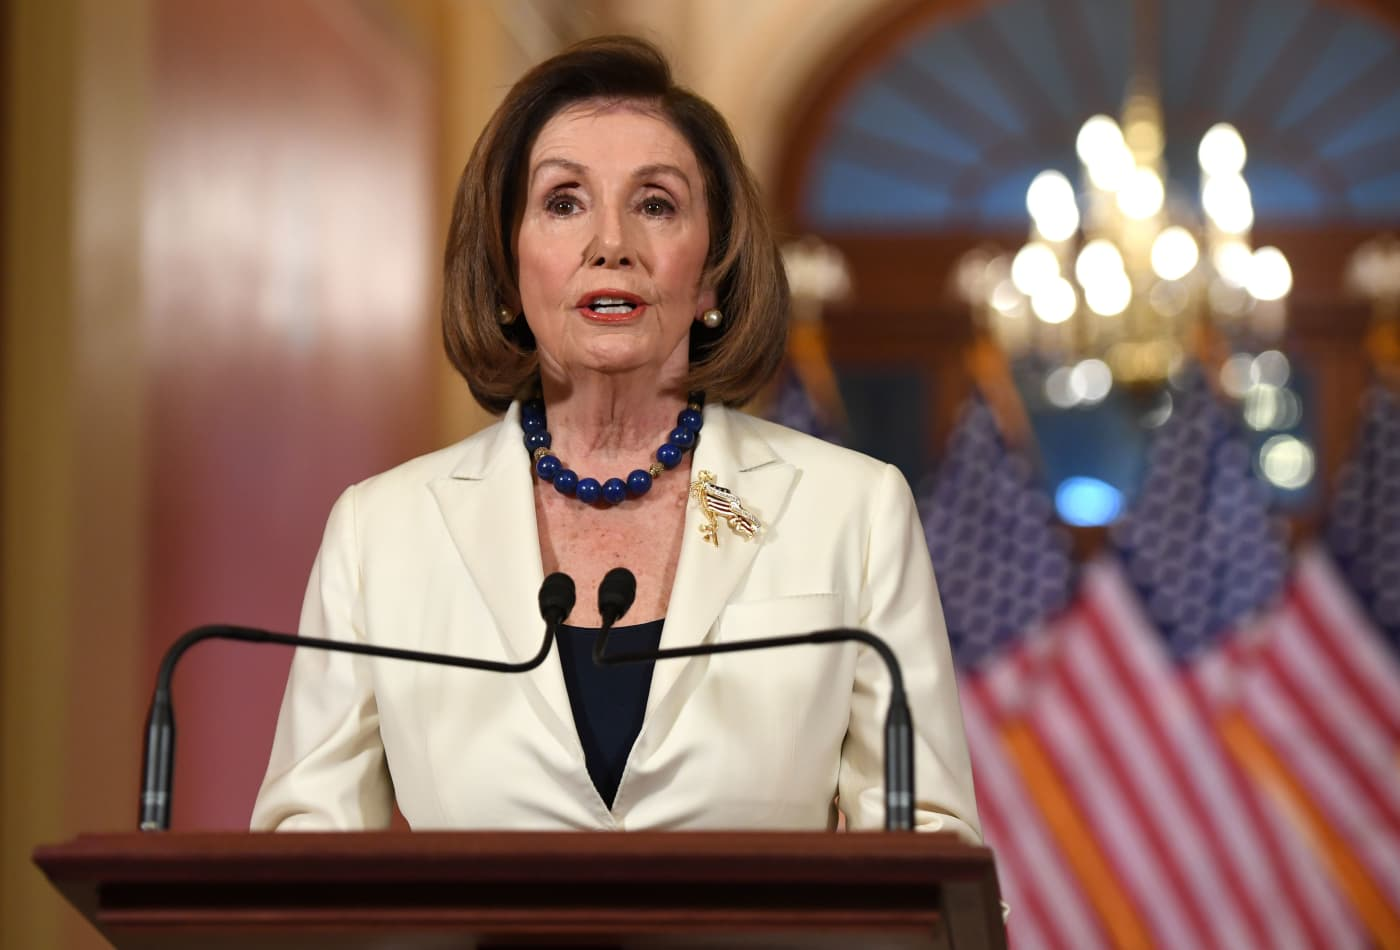 Pelosi directs House Democrats to proceed with articles of impeachment against Trump